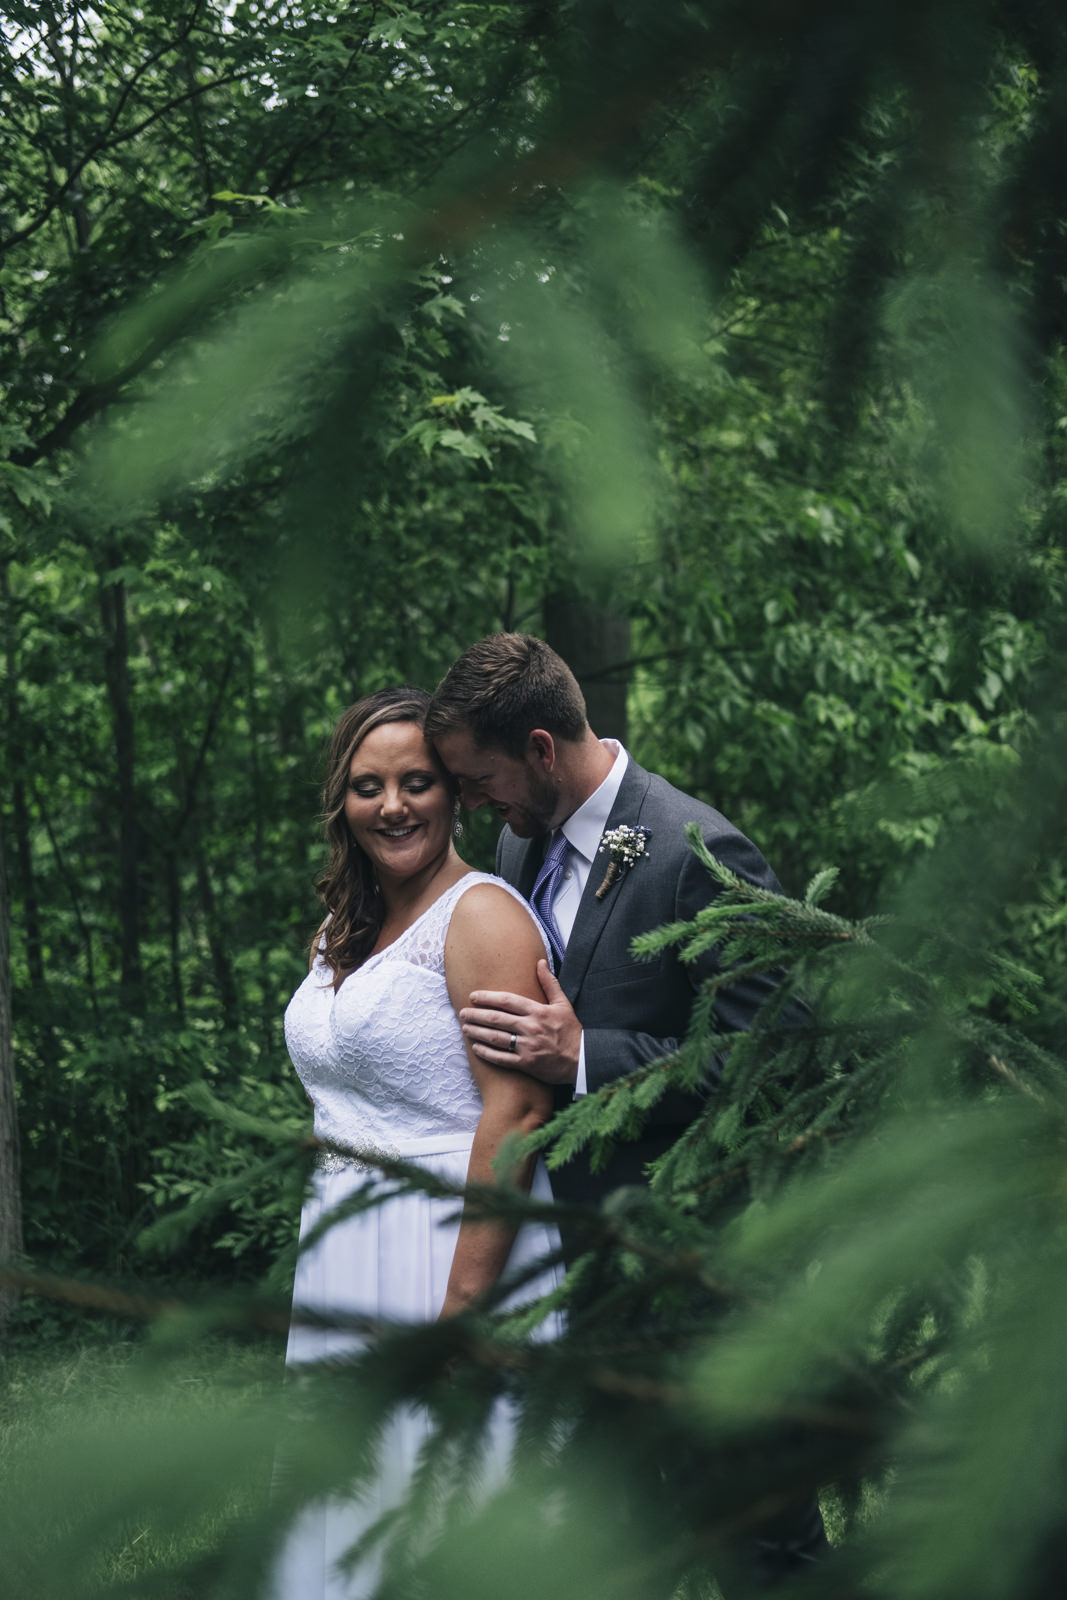 Bride and groom photography at backyard wedding in Whitehouse, Ohio.